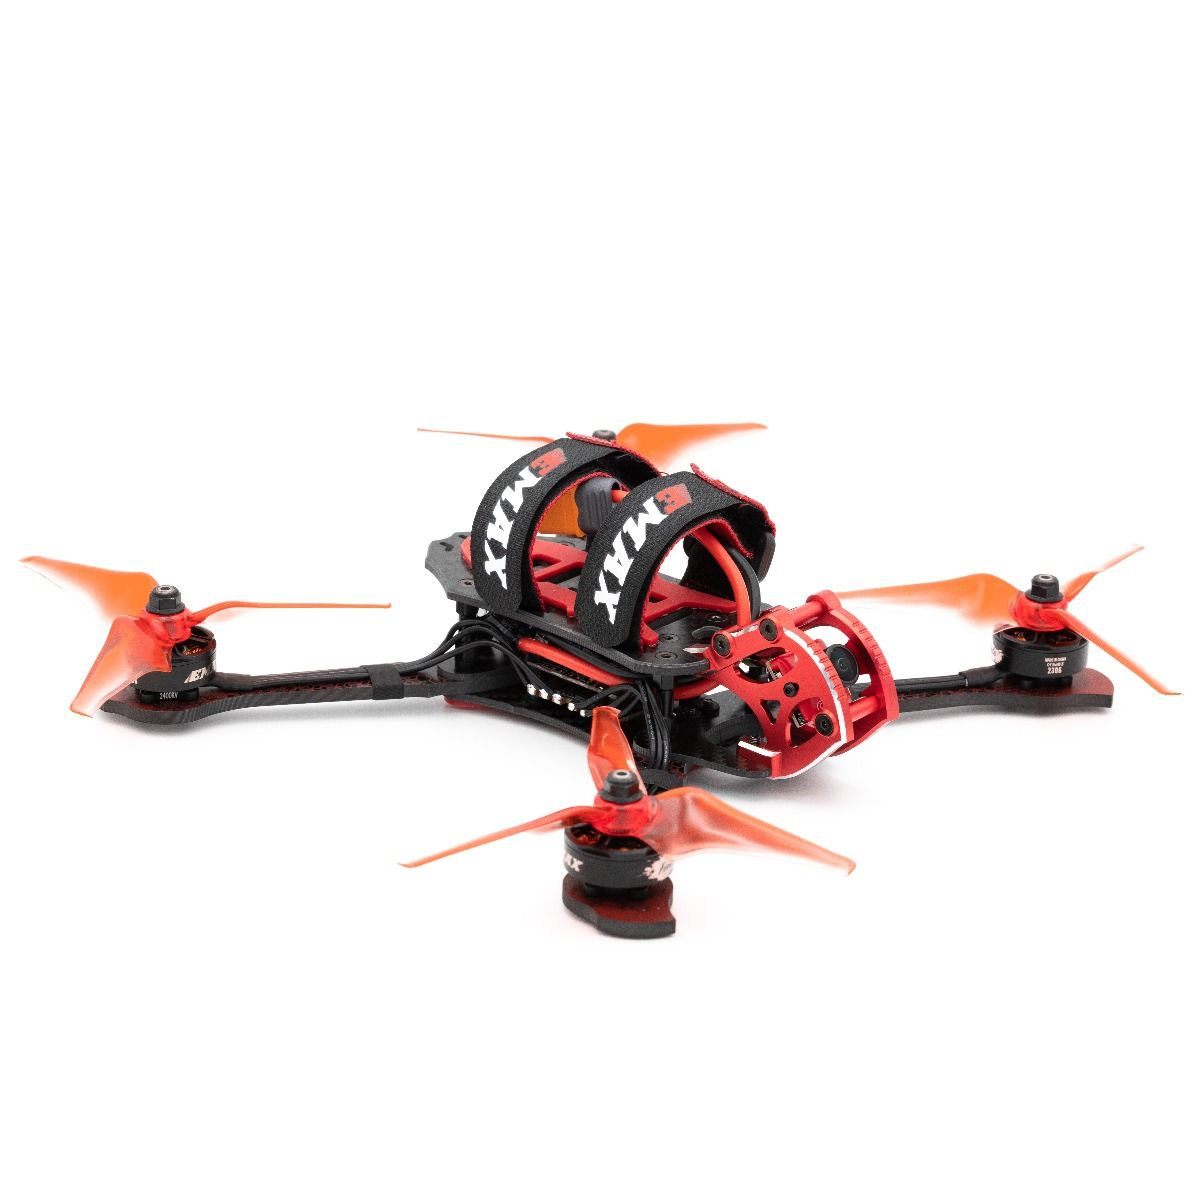 EMAX BUZZ Freestyle Racing - BNF 2400kv 4s Frsky